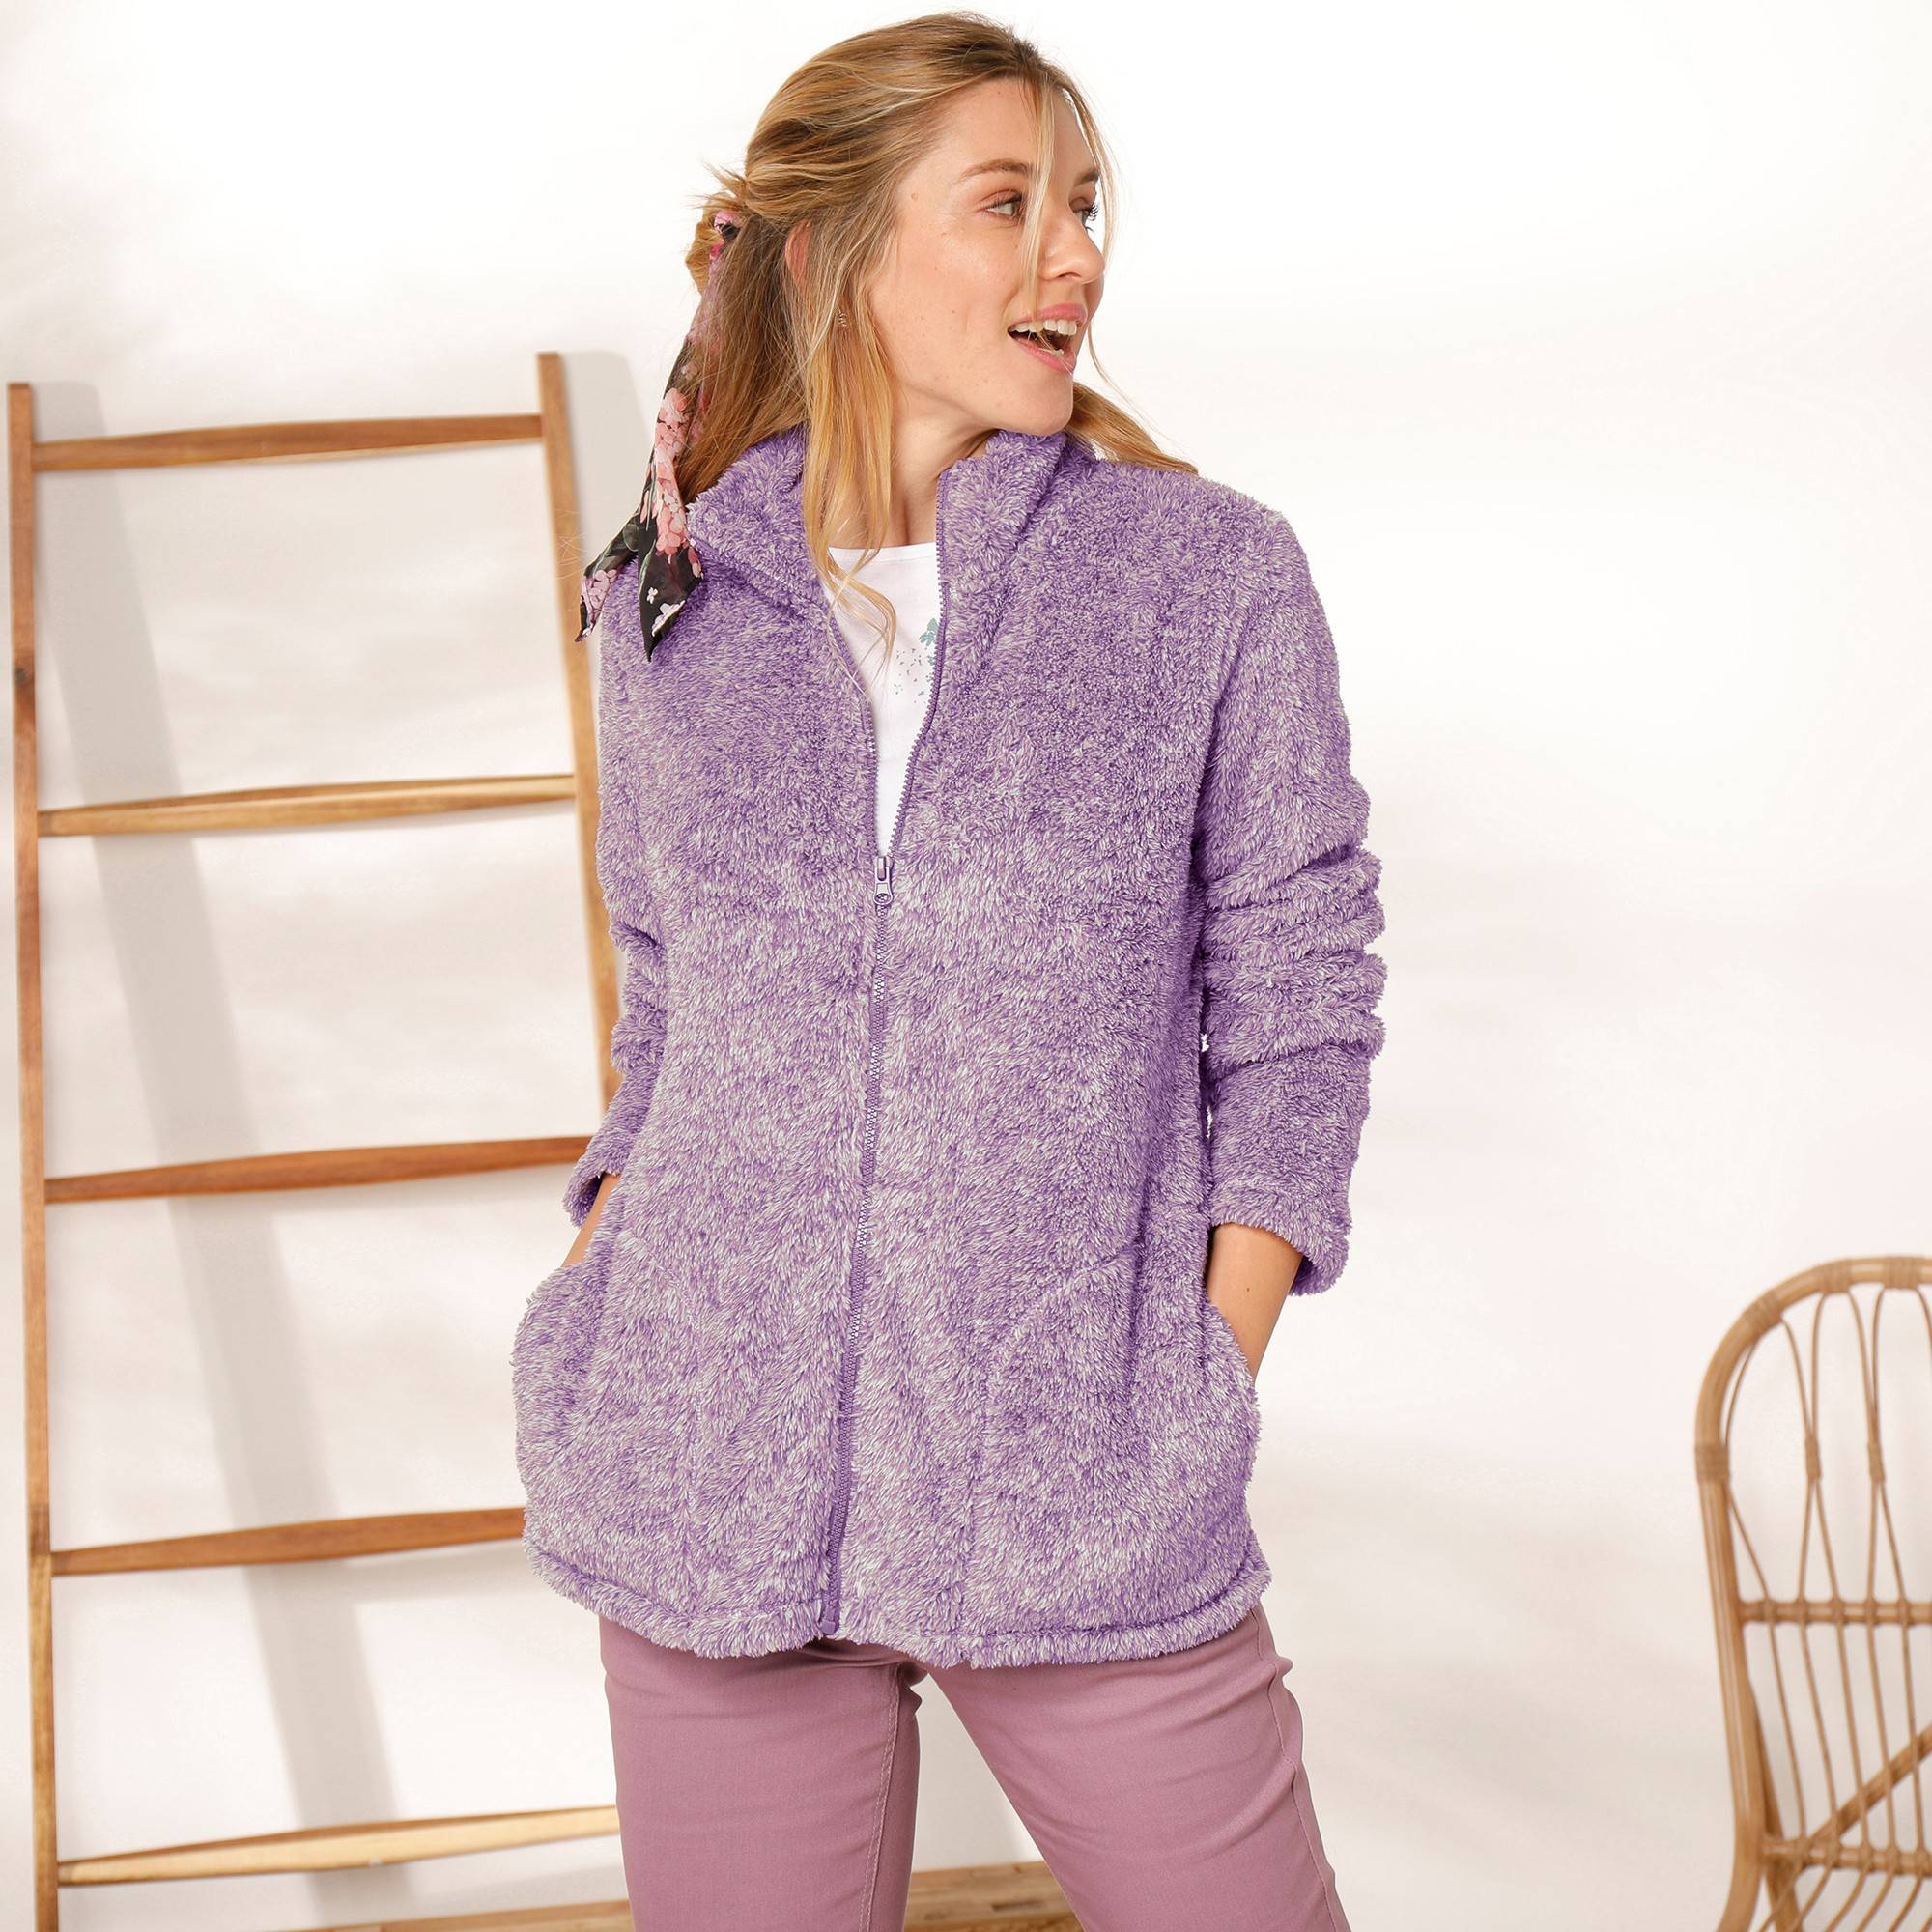 Casual Collection Veste maille peluche - Violet - Taille : 56 - Blancheporte